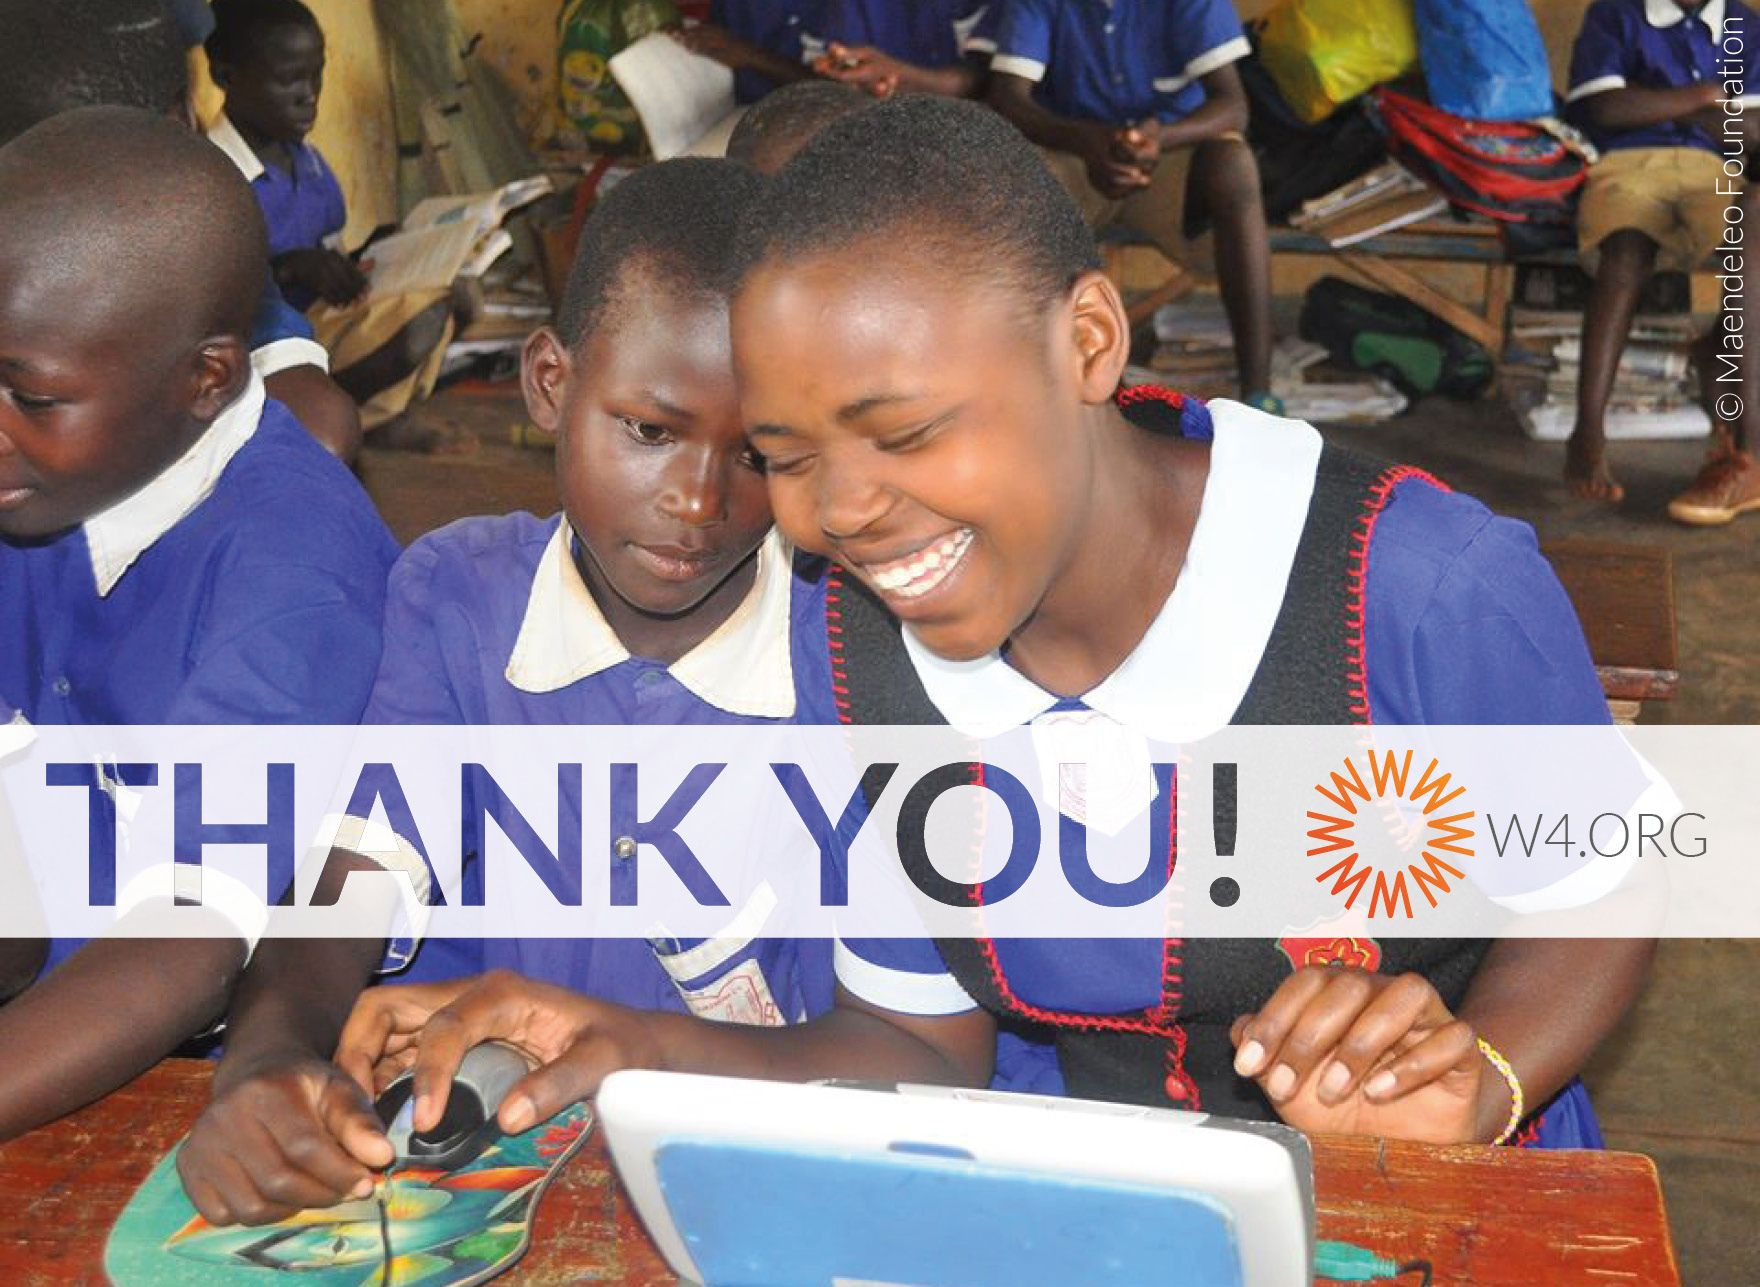 YOU DID IT! Thank you dear #W4 donors for helping us reach our fundraising goal for our field program in Uganda! Thanks to you, 450 girls and 70 women from rural #Uganda will benefit from innovative IT (information technology) education, enabling the girls and women to acquire useful skills that can help them succeed in their education and ultimately obtain safe employment. Your support is life-changing! THANKYOU! https://www.w4.org/en/project/help-rural-women-in-uganda-business-training/